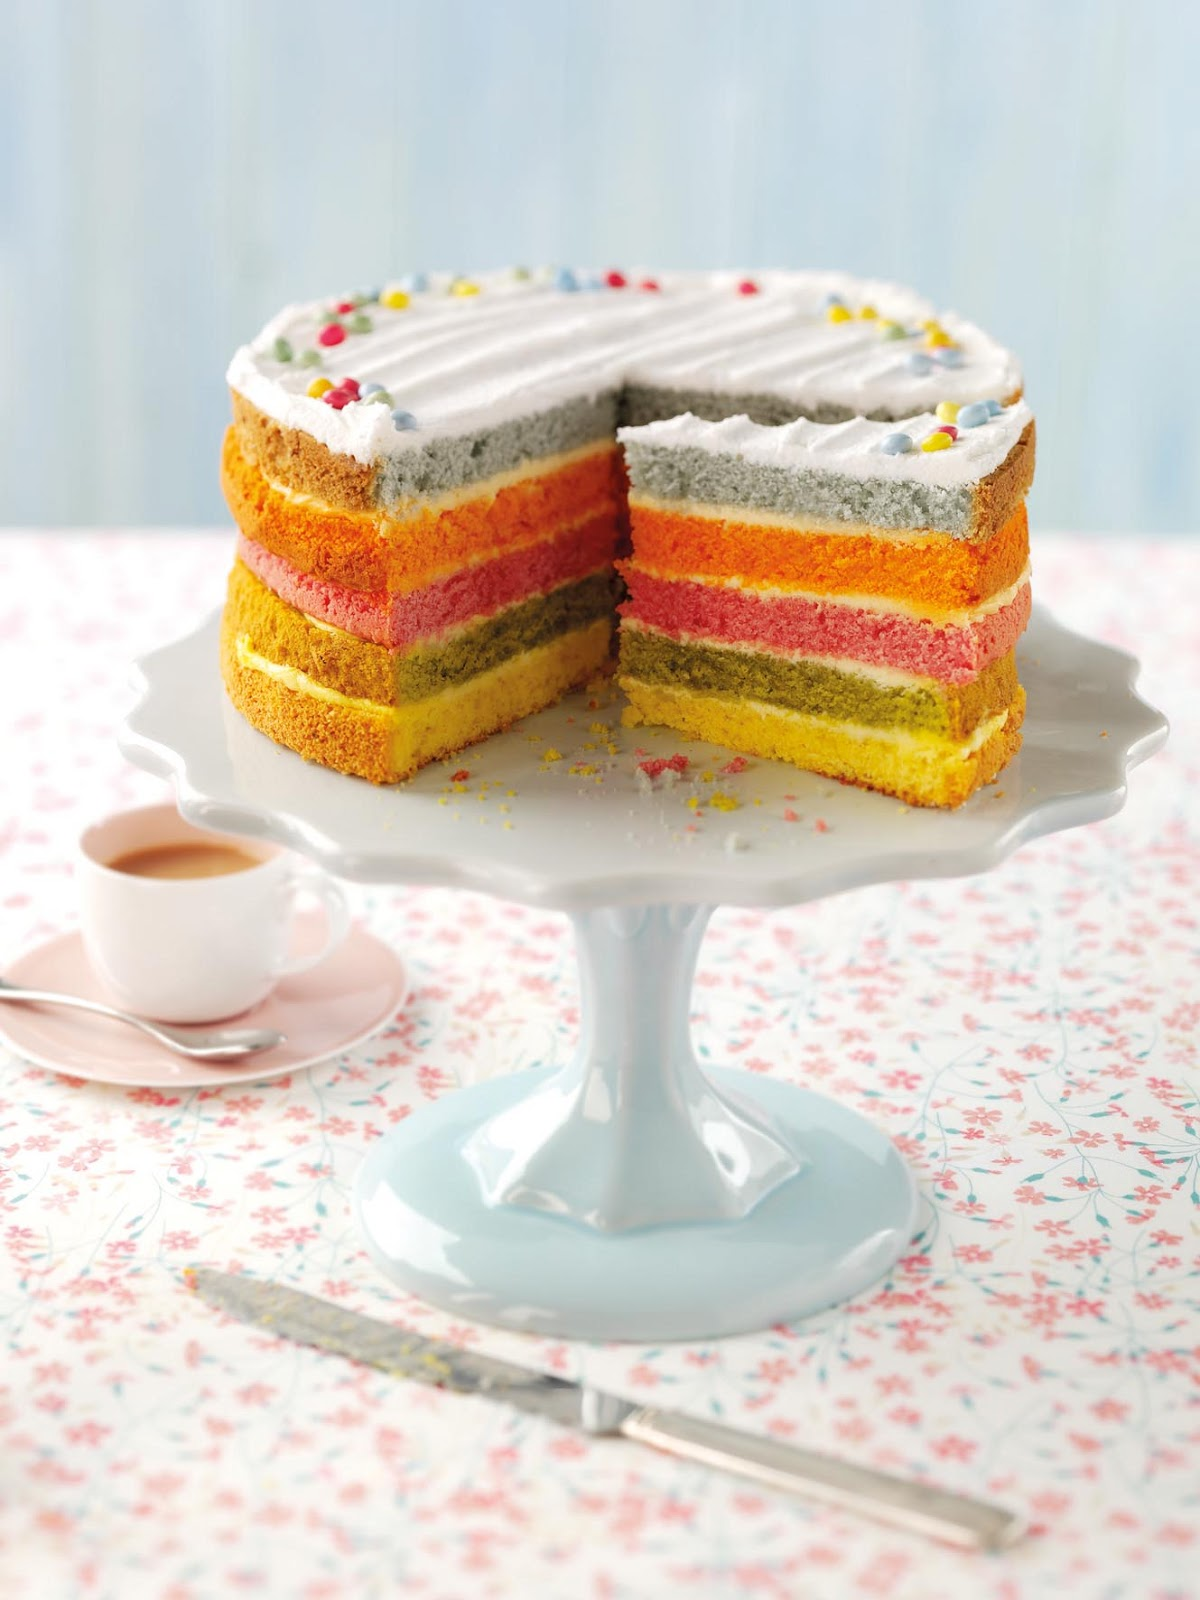 Grocery Gems New Celebration Cakes At Asda Including A